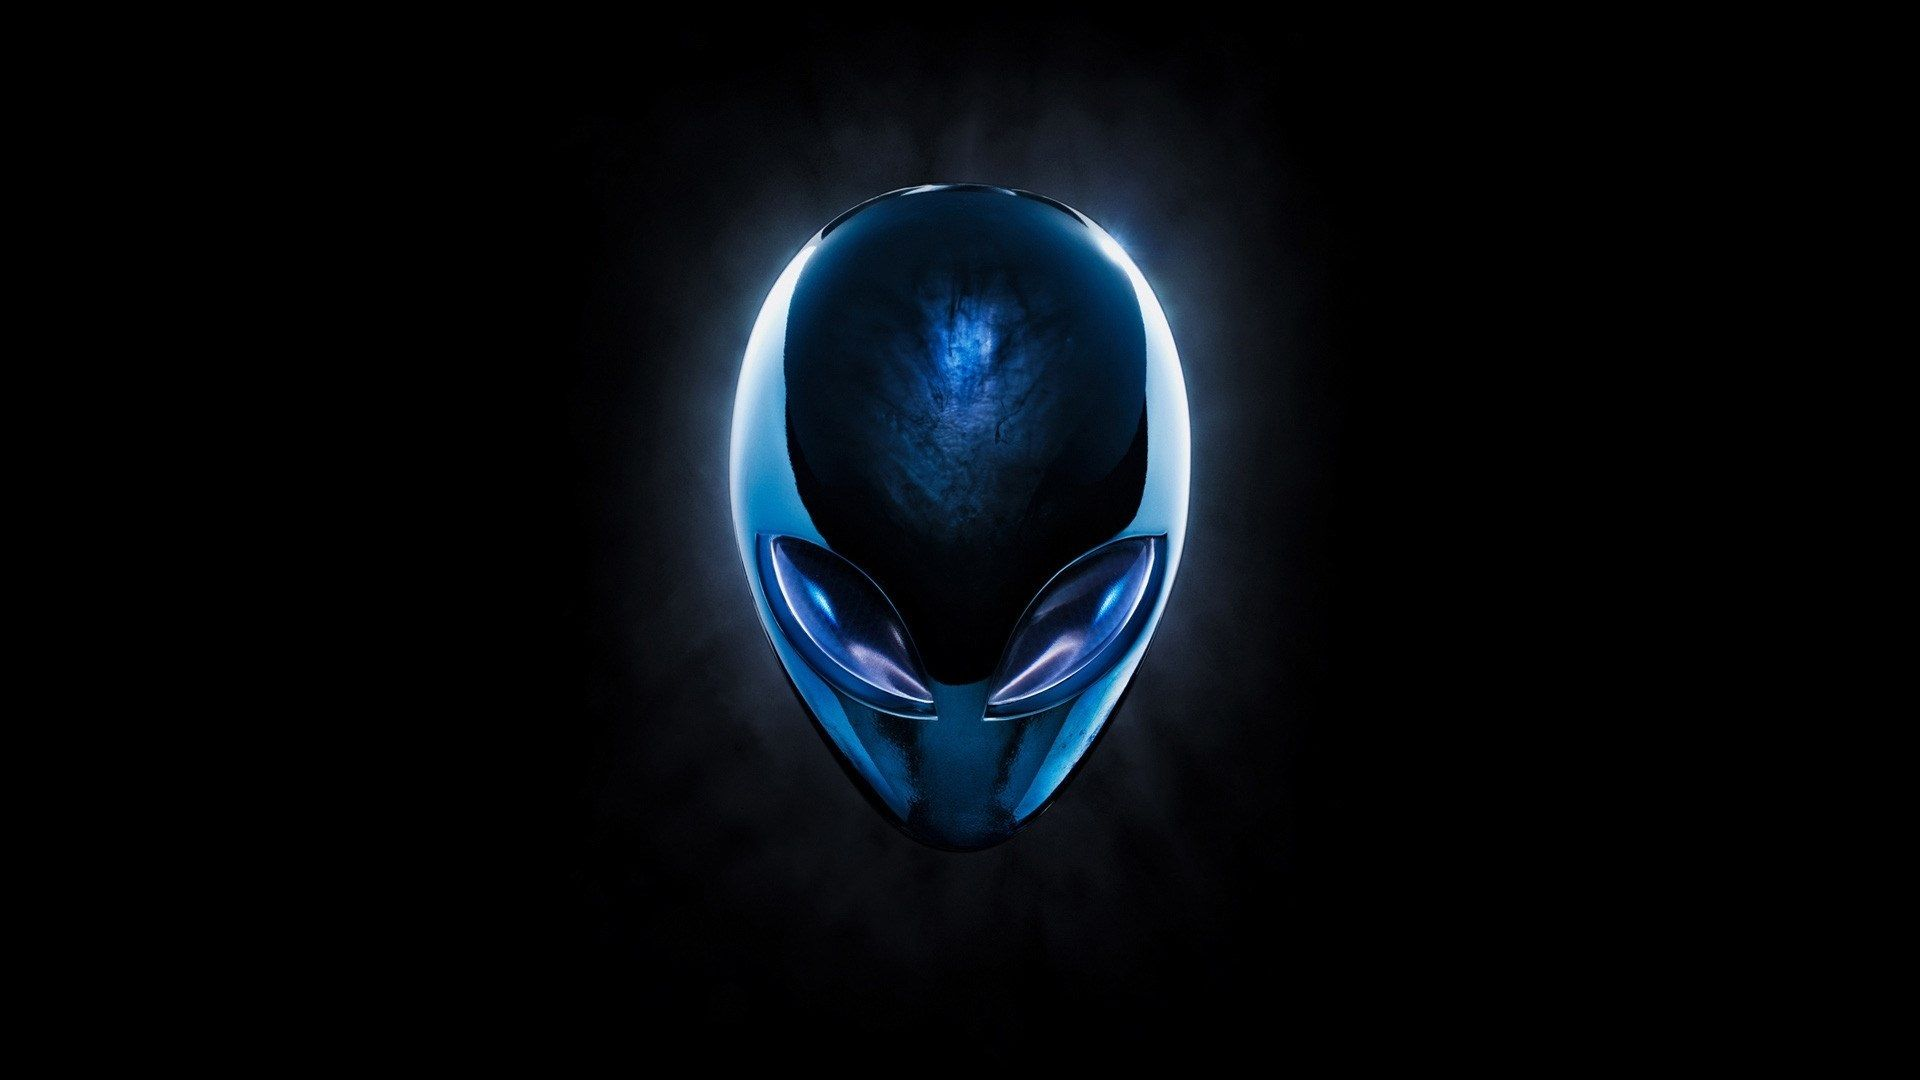 1920x1080 Alienware Picture Desktop In 2019 Alienware